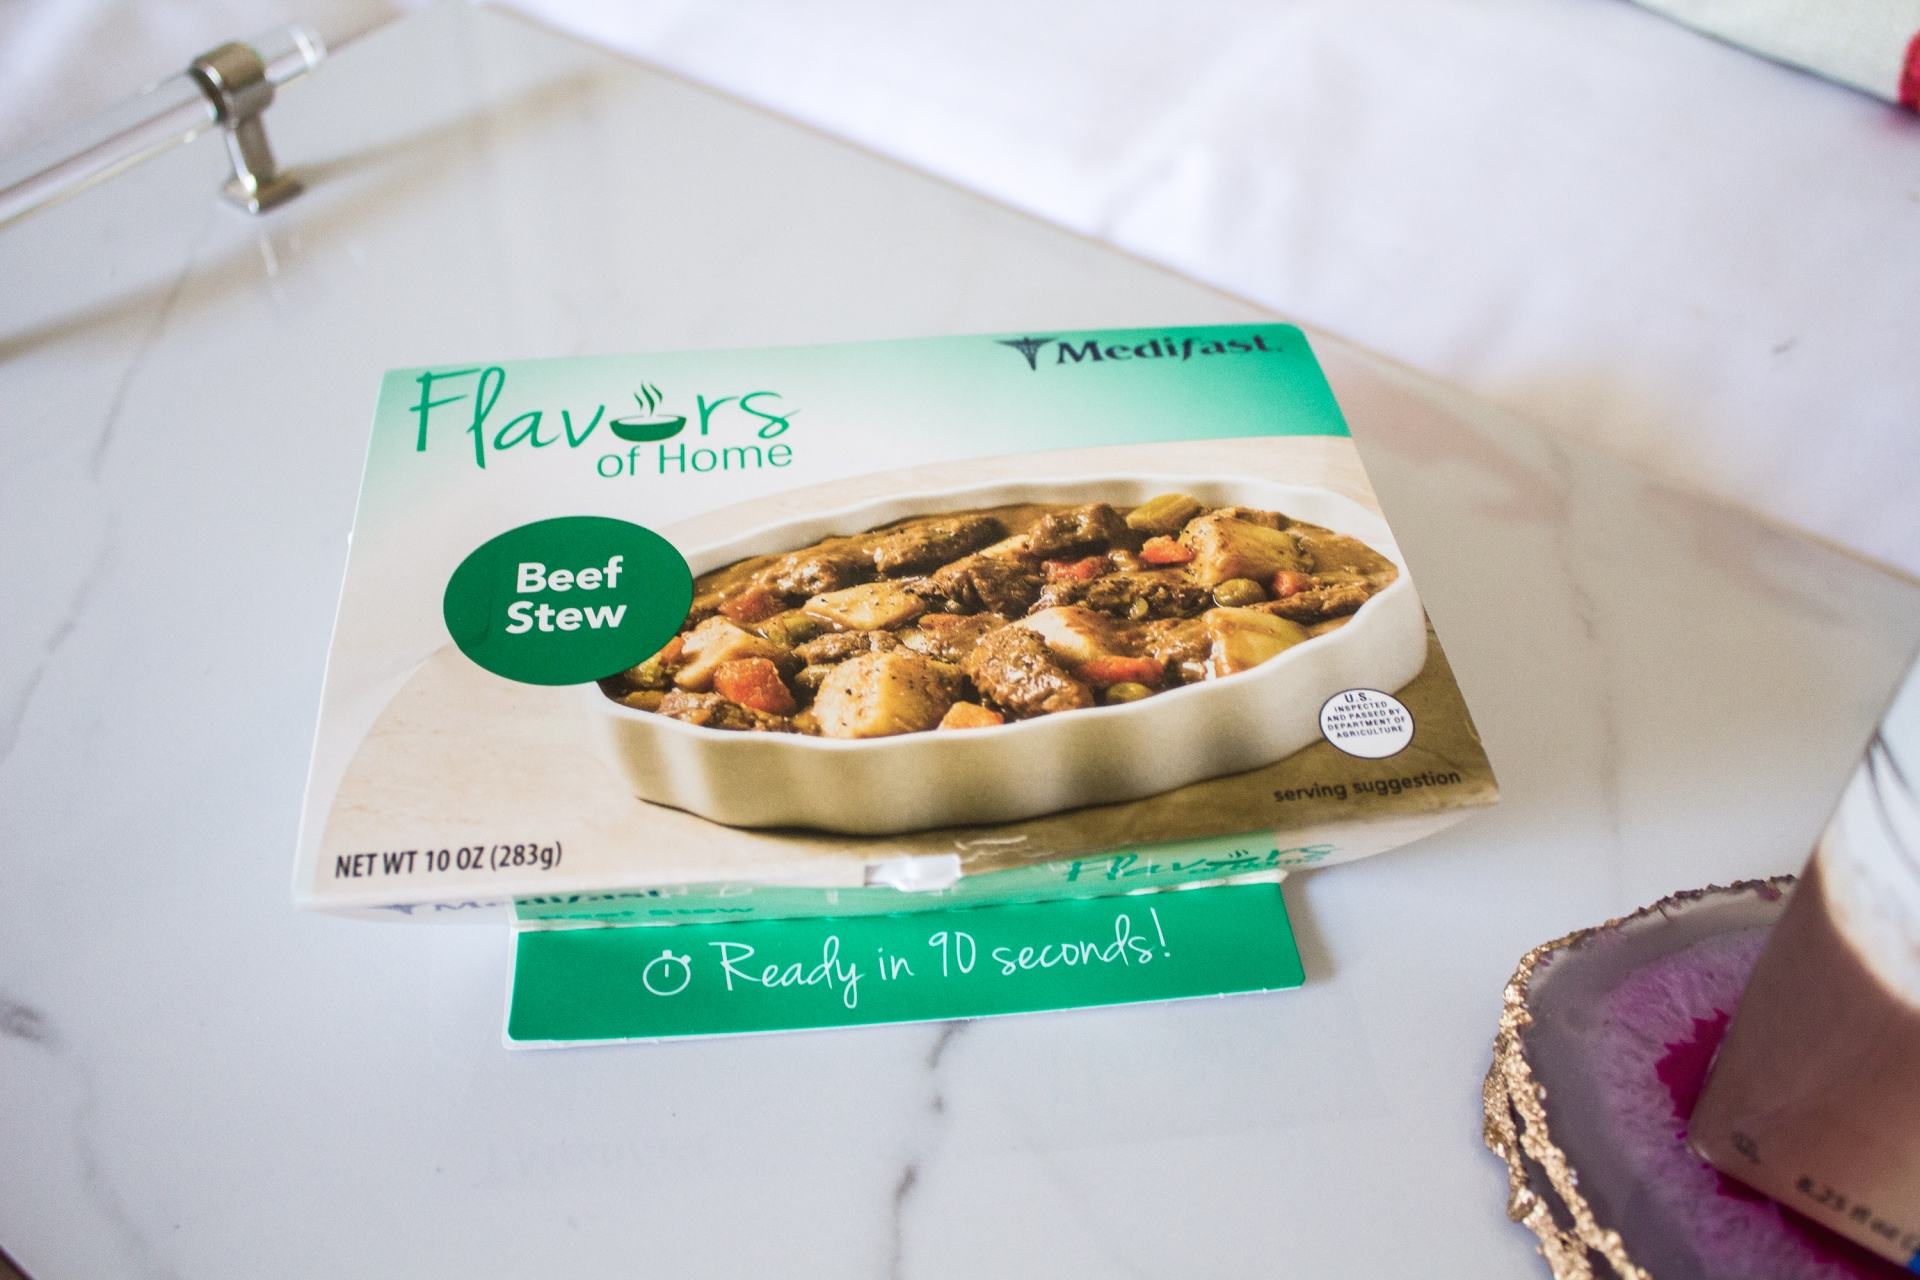 Medifast-Go-Lean-And-Green-Meals-Flavors-Of-Home-Beef-Stew